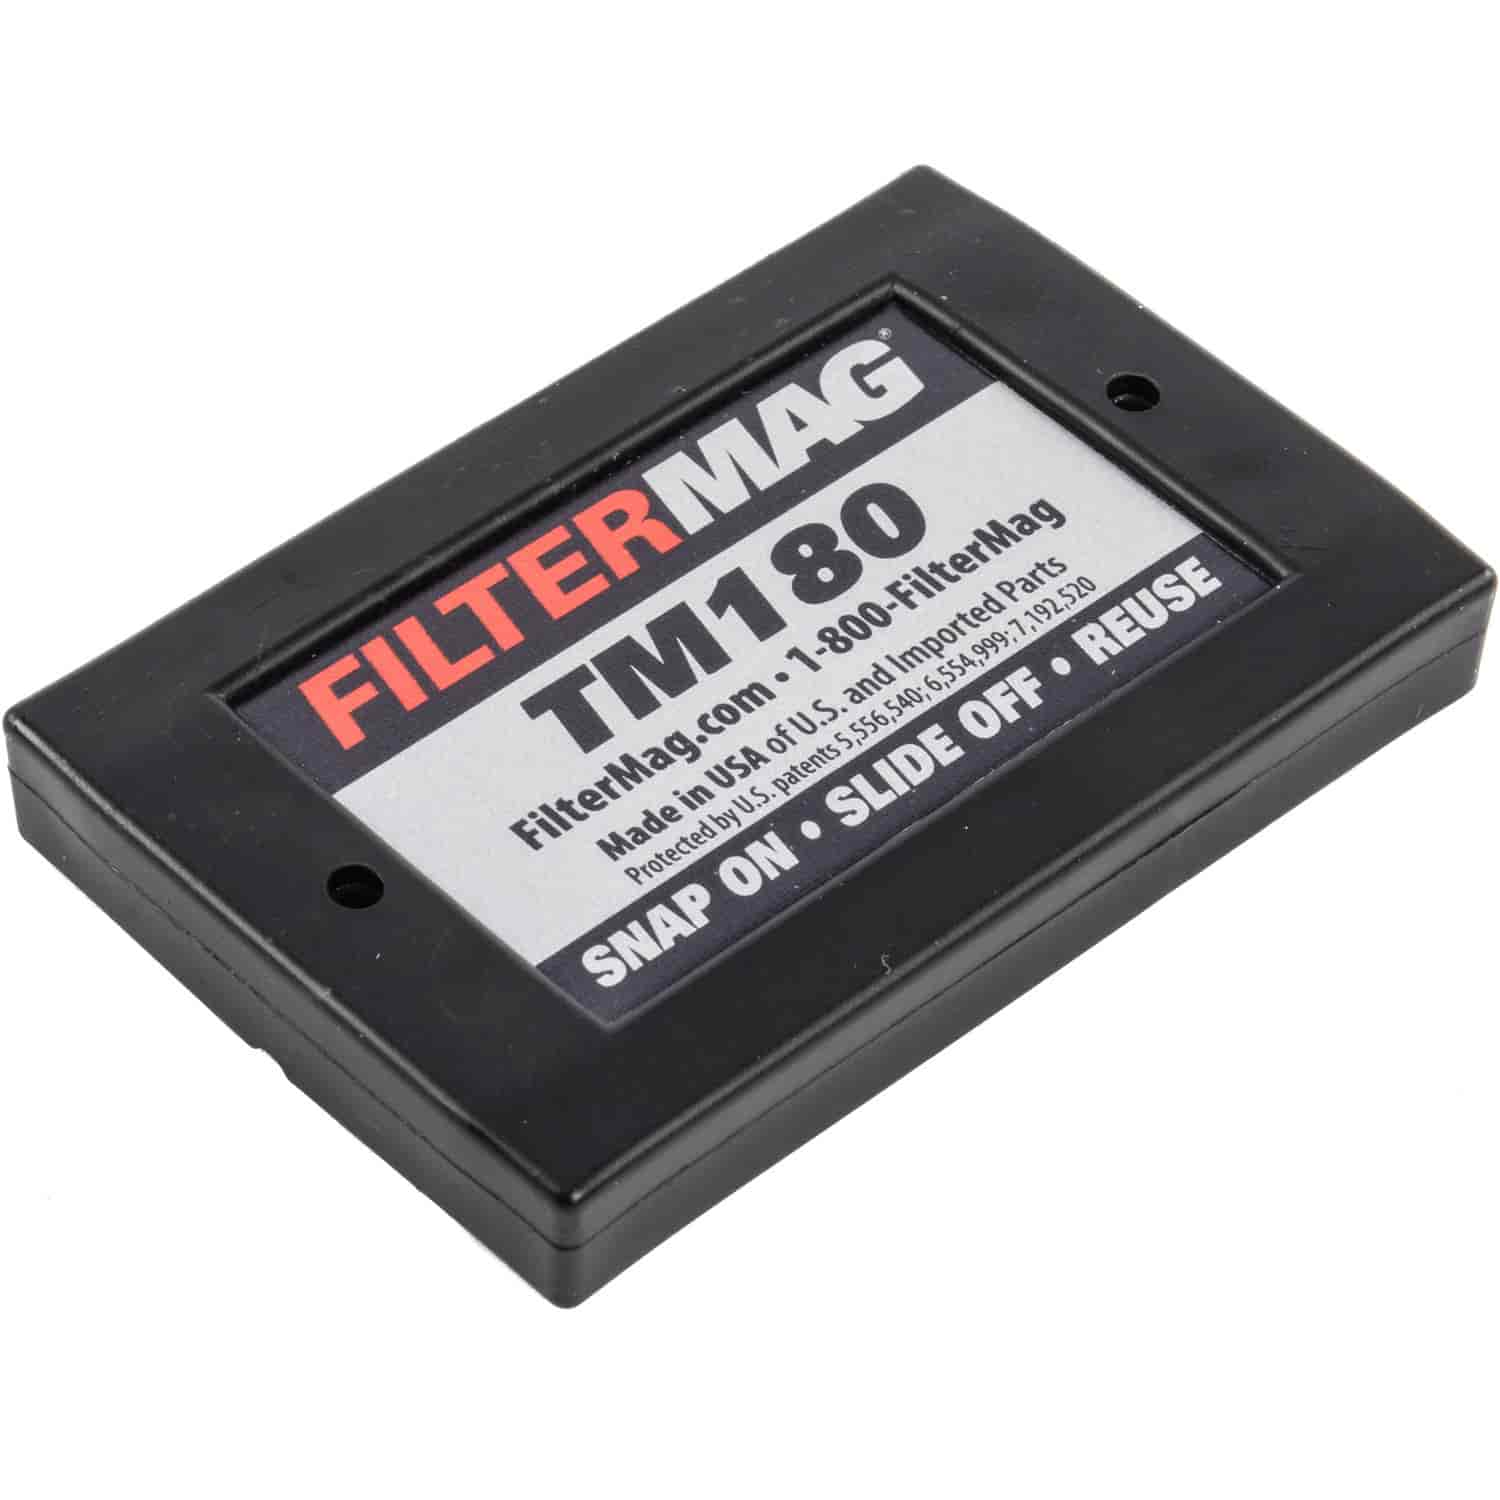 FilterMAG TM180 - FilterMAG Oil/Fluid Filtration Magnets